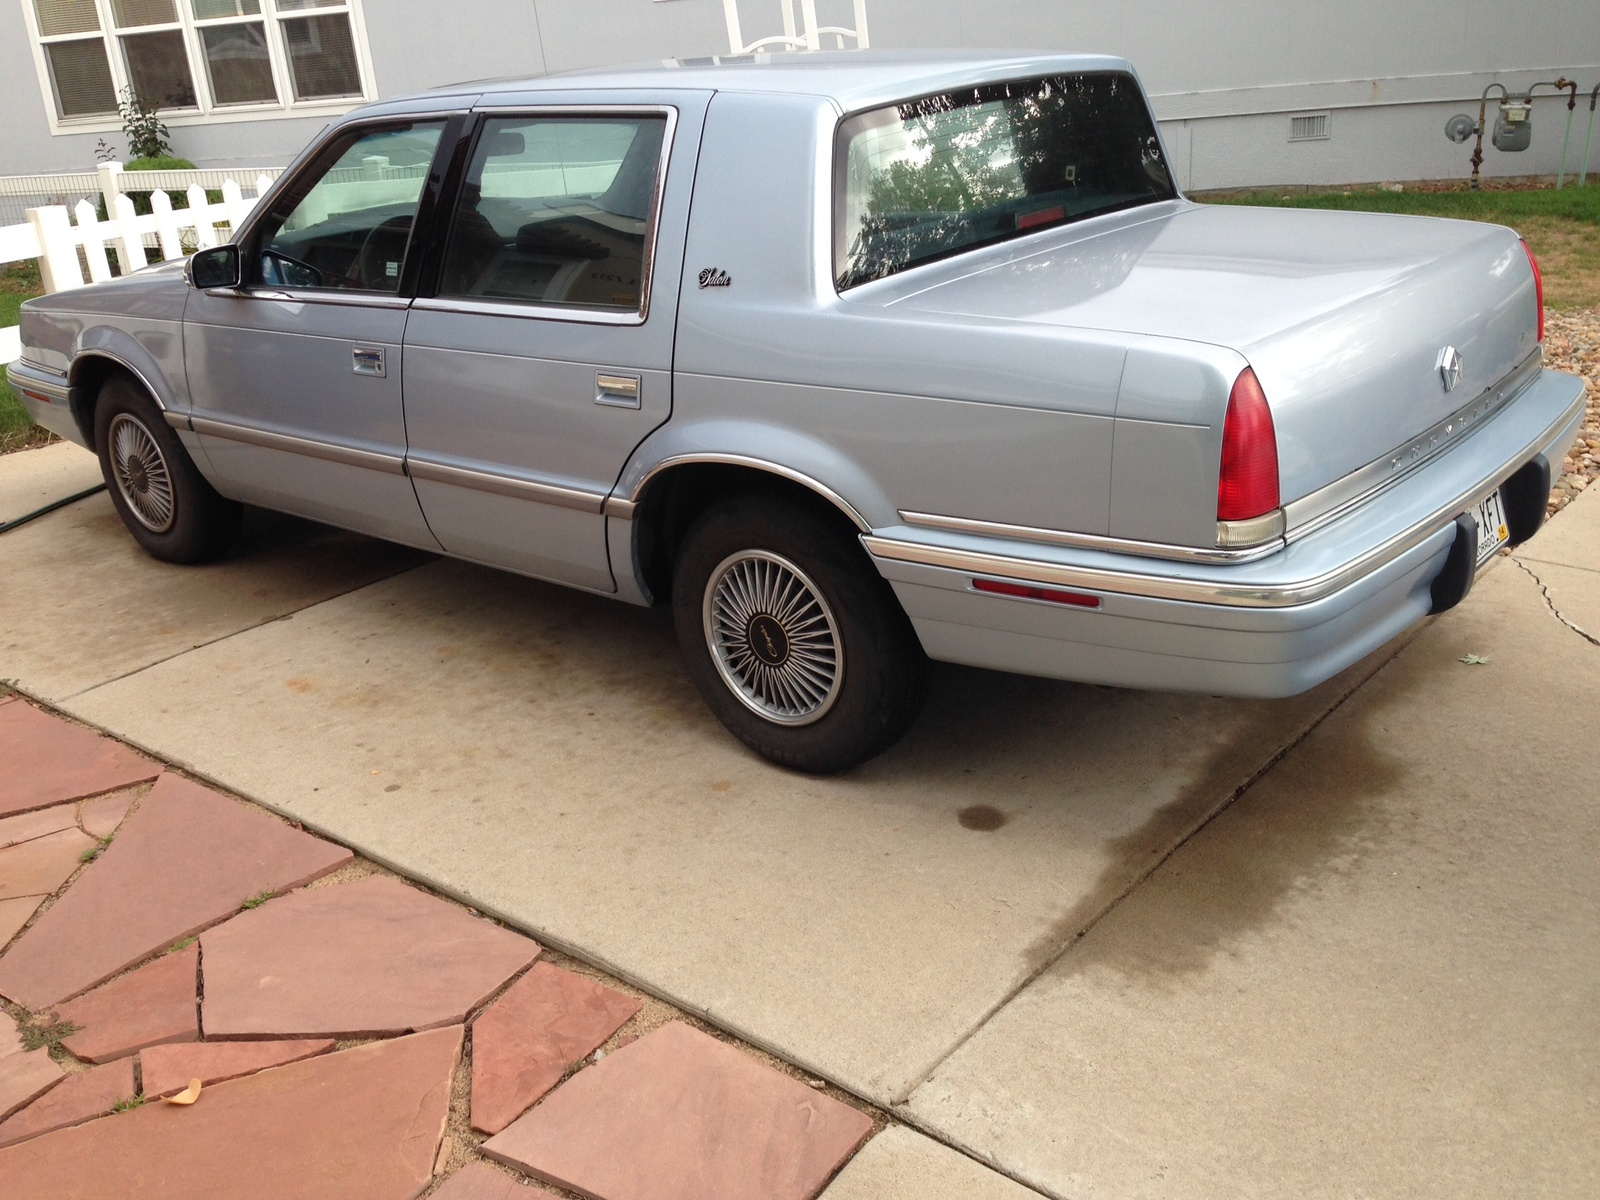 1992 chrysler new yorker overview cargurus for 1992 chrysler new yorker salon